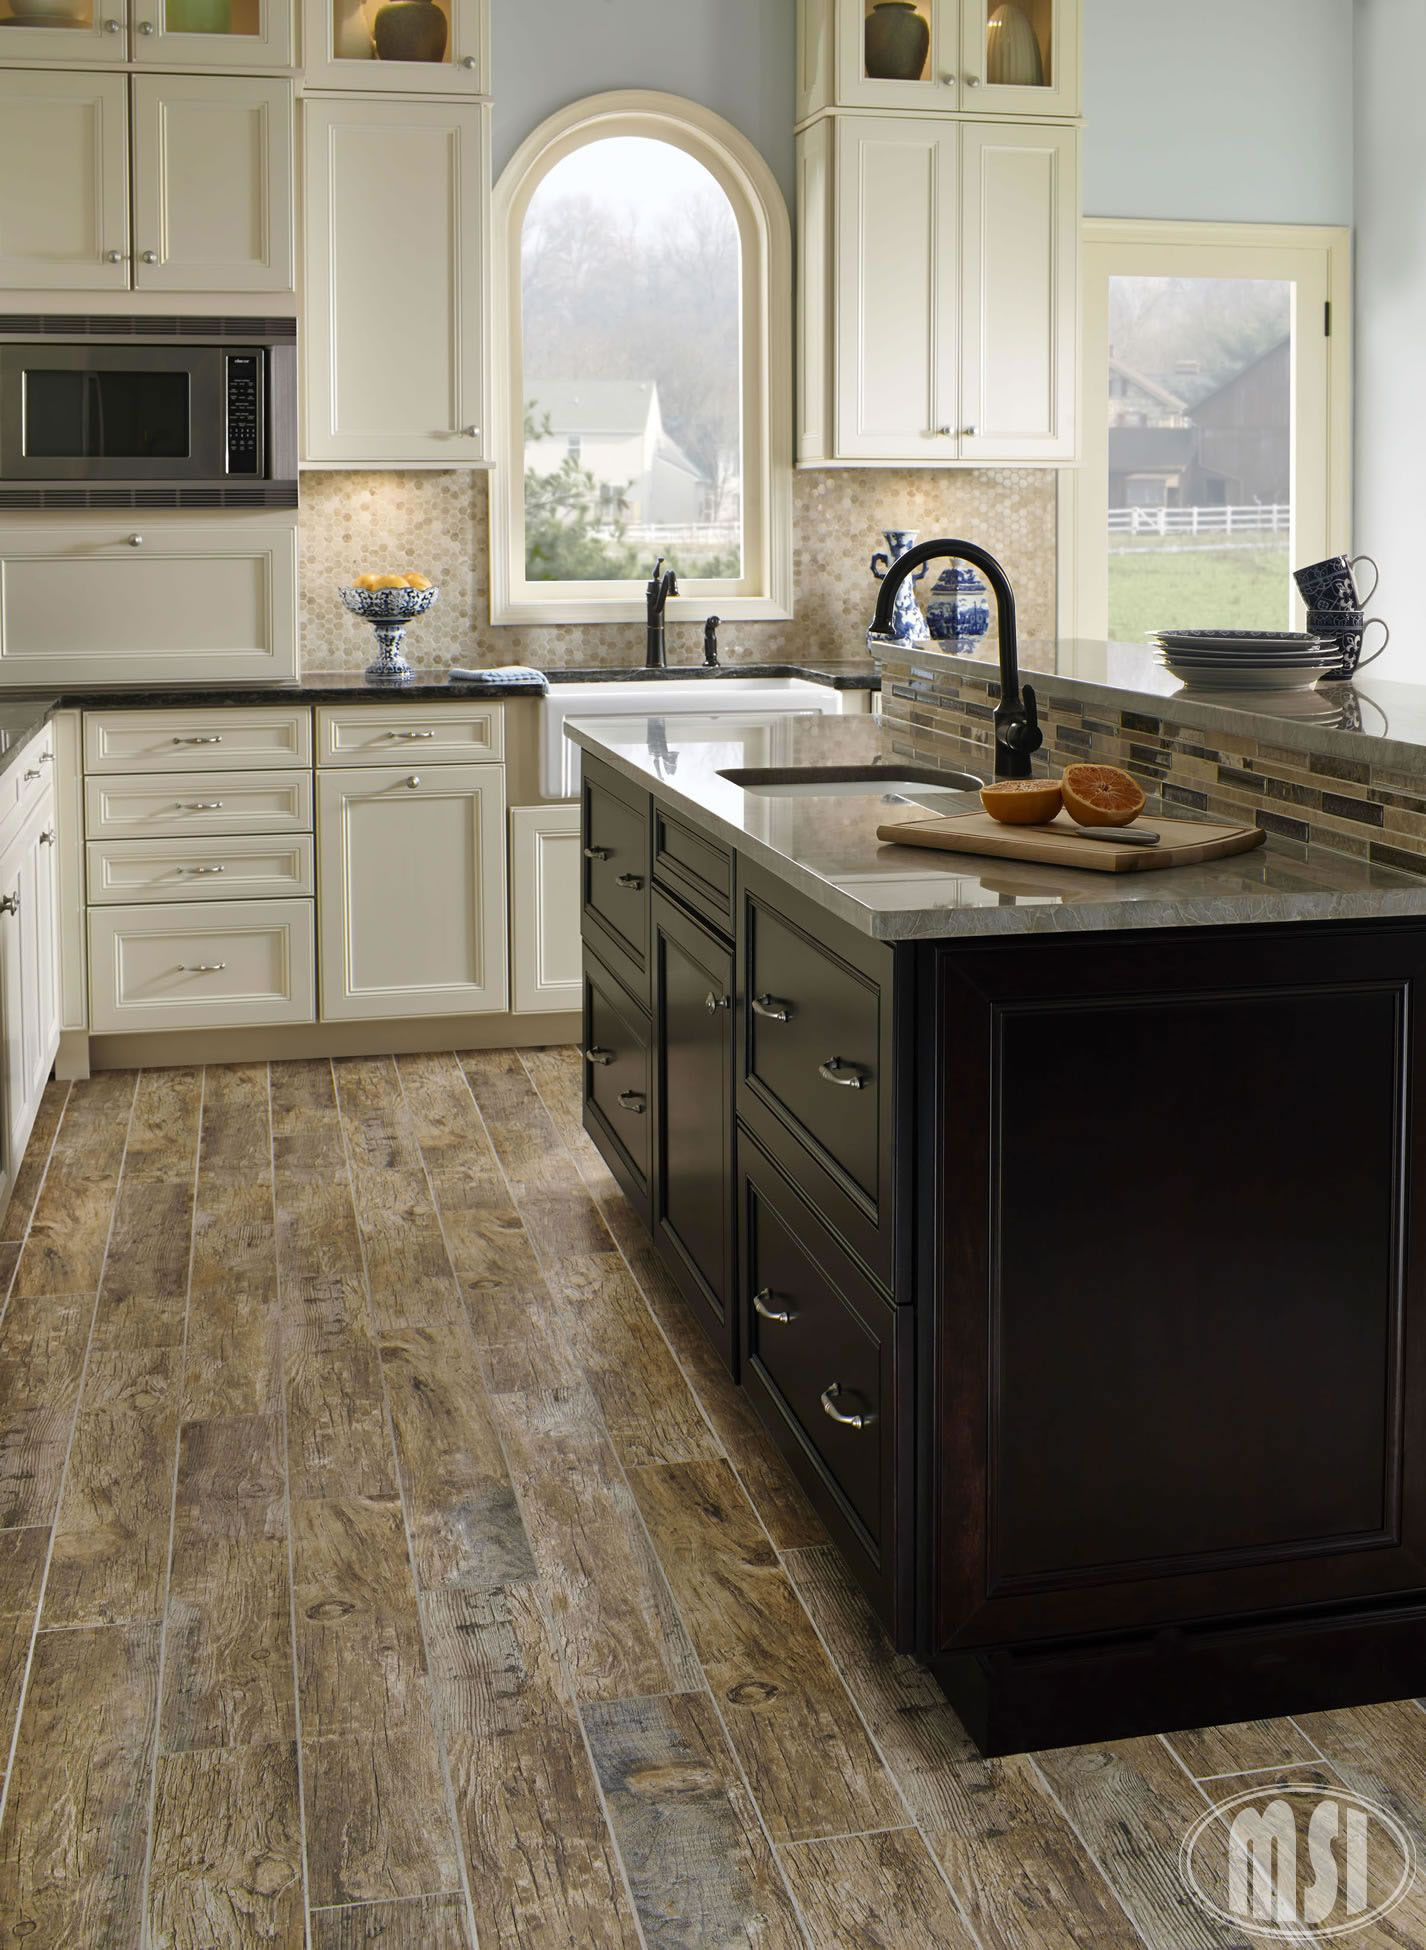 Porcelain Tile For Kitchen Floor Perfect Kitchen Floor No Need To Worry About Real Wood Floors